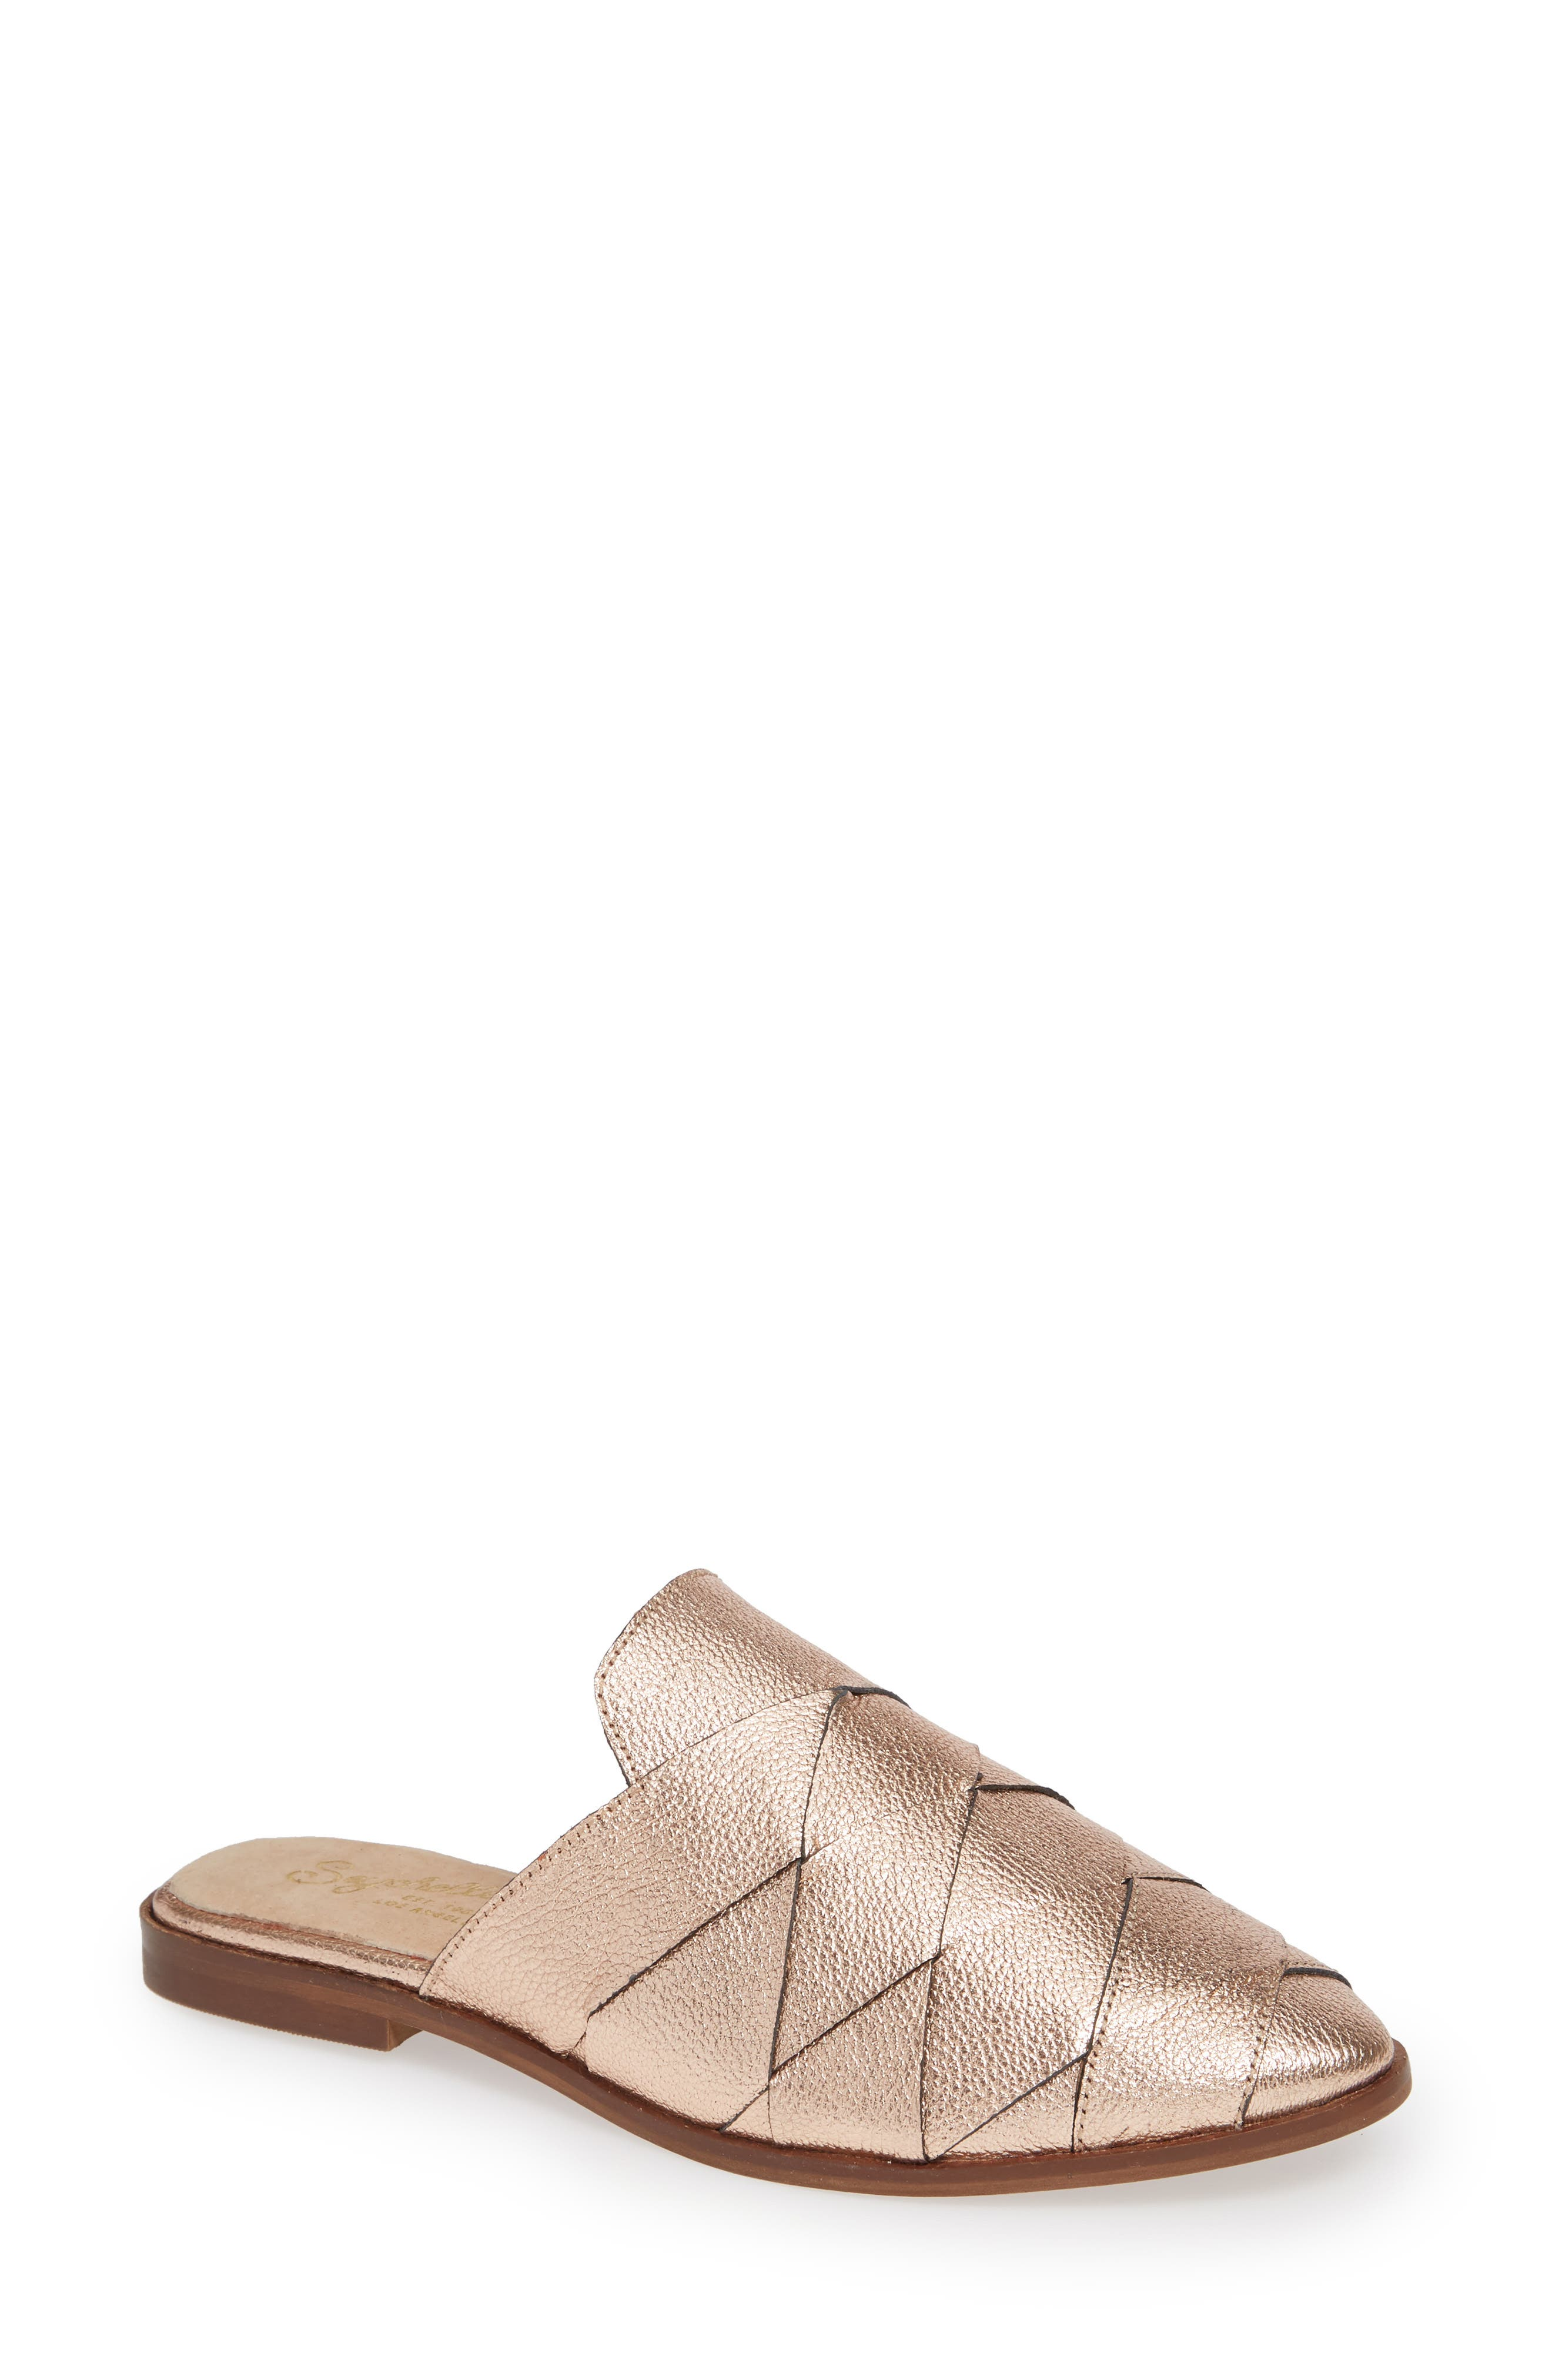 Survival II Mule,                         Main,                         color, ROSE GOLD LEATHER